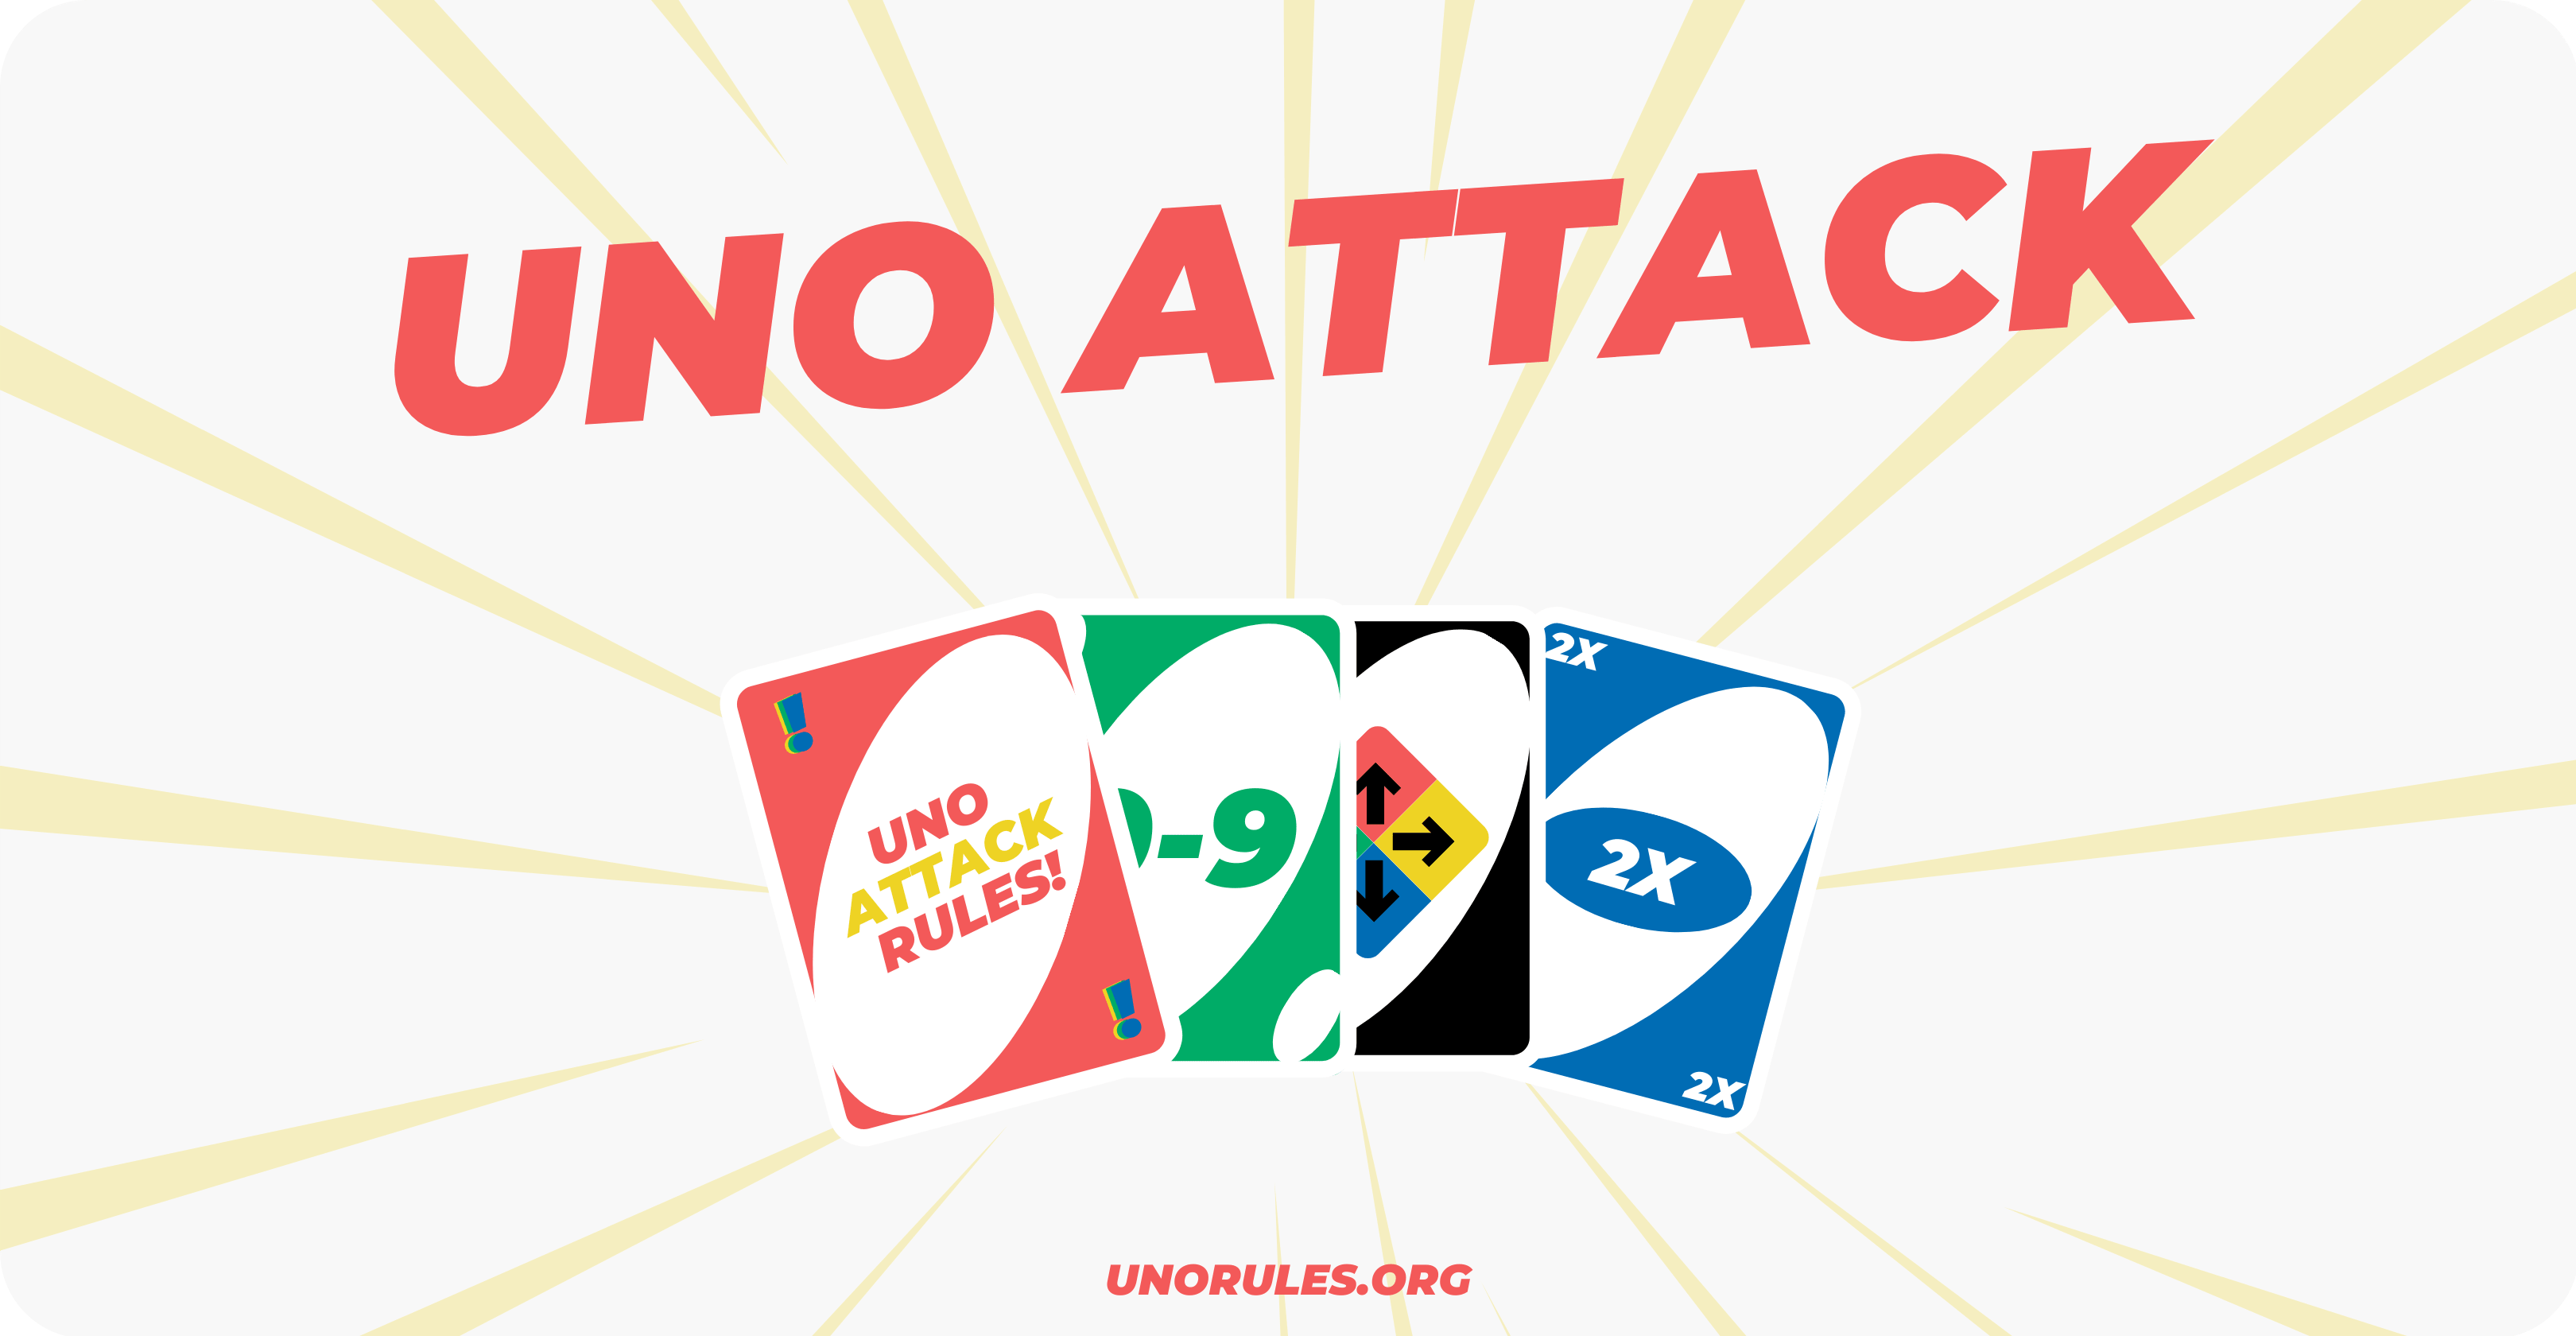 Uno Attack - Everything you need to know